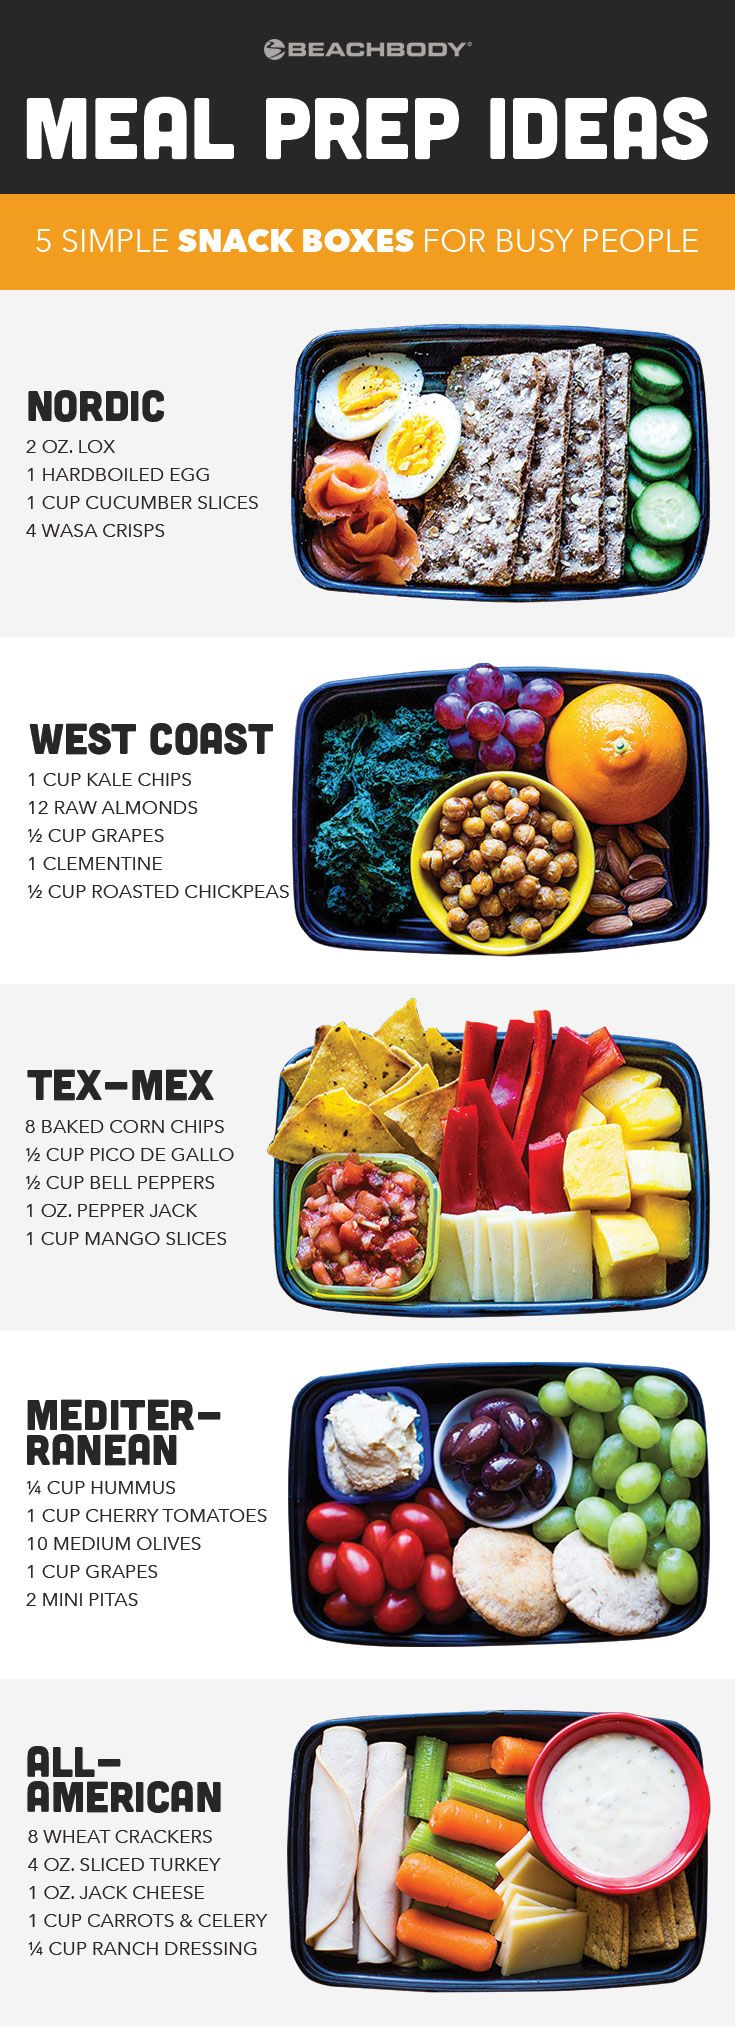 These grab-and-go snack boxes are easy to put together and each one is loaded with protein and fiber to satisfy that mid-afternoon rumble in your tummy.